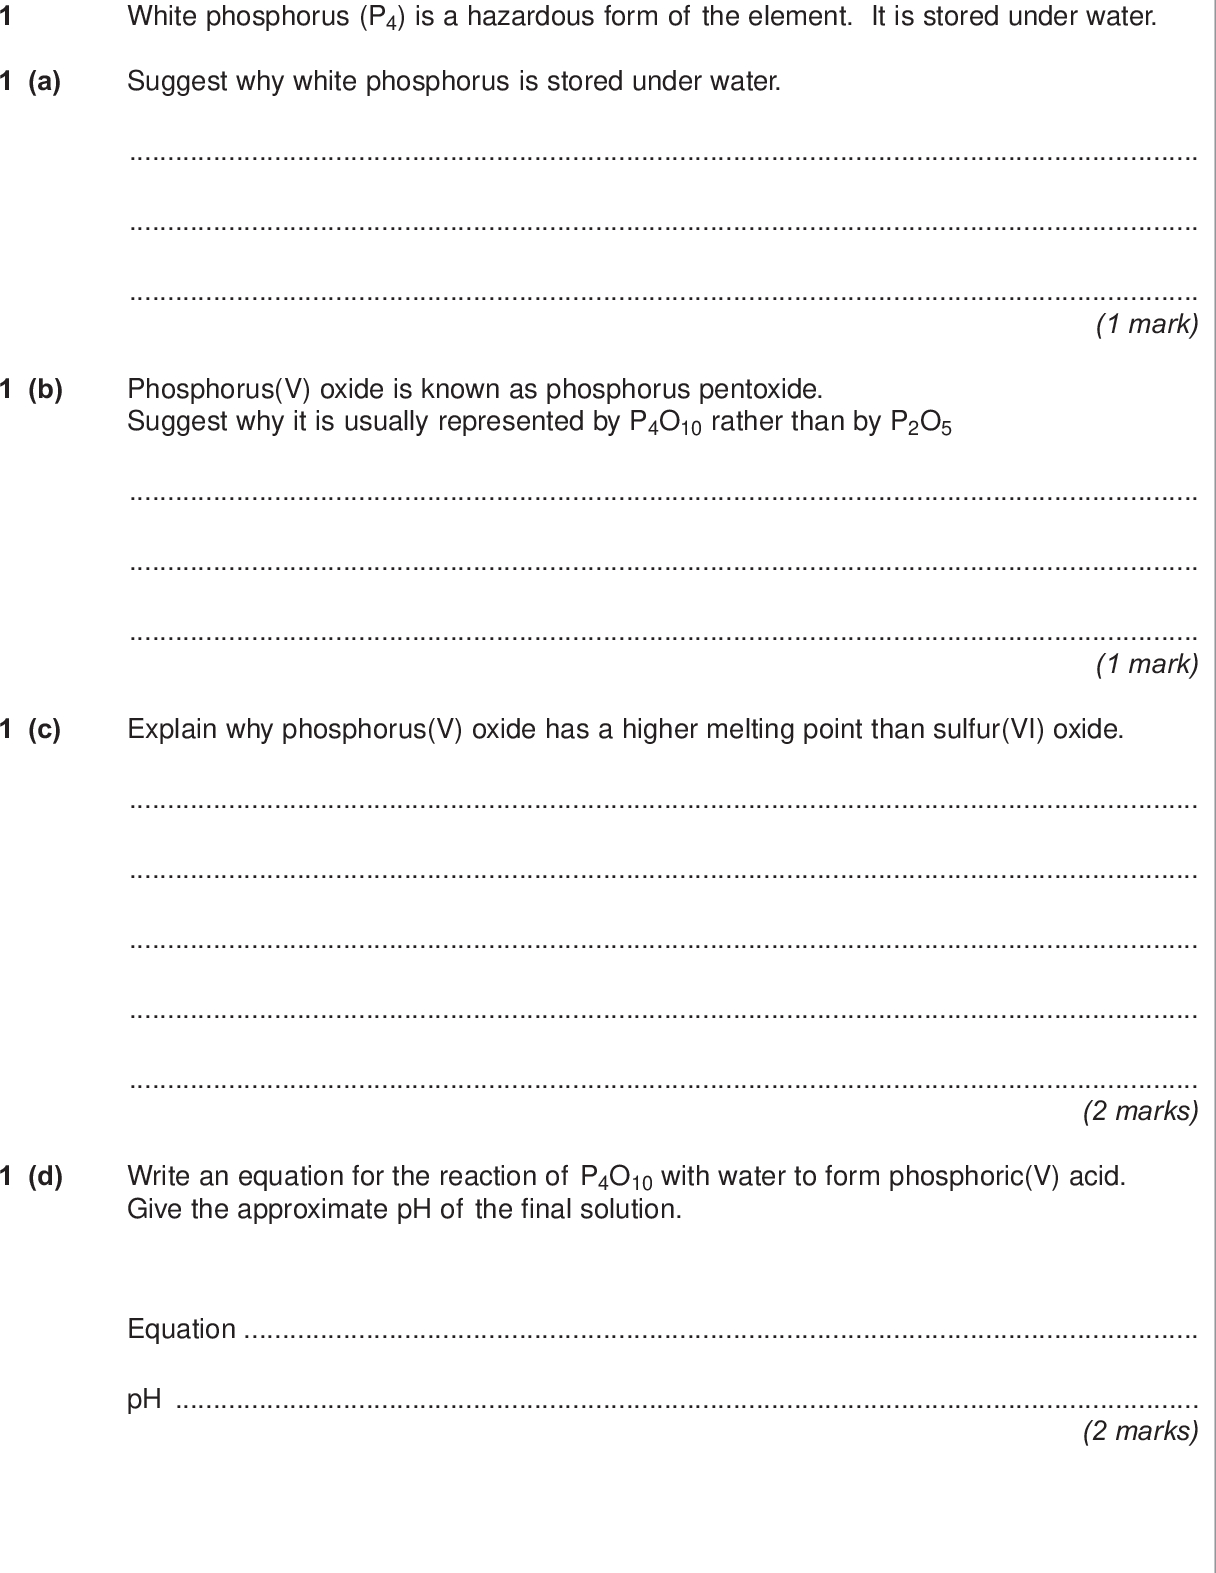 section a answer all questions in the spaces provided do not write outside the box white phosphorus p is a hazardous form of the element it is stored under water a suggest why white phosphorus is stored under water mark b phosphorus v oxide is known as phosphorus pentoxide suggest why it is usually represented by p o rather than by p o mark c explain why phosphorus v oxide has a higher melting point than sulfur vi oxide marks d write an equation for the reaction of p o with water to form phosphoric v acid give the approximate ph of the final solution equation ph marks wmp jun chem do not write outside the box e a waste water tank was contaminated by p o the resulting phosphoric v acid solution was neutralised using an excess of magnesium oxide the mixture produced was then disposed of in a lake e i write an equation for the reaction between phosphoric v acid and magnesium oxide mark e ii explain why an excess of magnesium oxide can be used for this neutralisation mark e iii explain why the use of an excess of sodium hydroxide to neutralise the phosphoric v acid solution might lead to environmental problems in the lake mark turn over for the next question turn over wmp jun chem